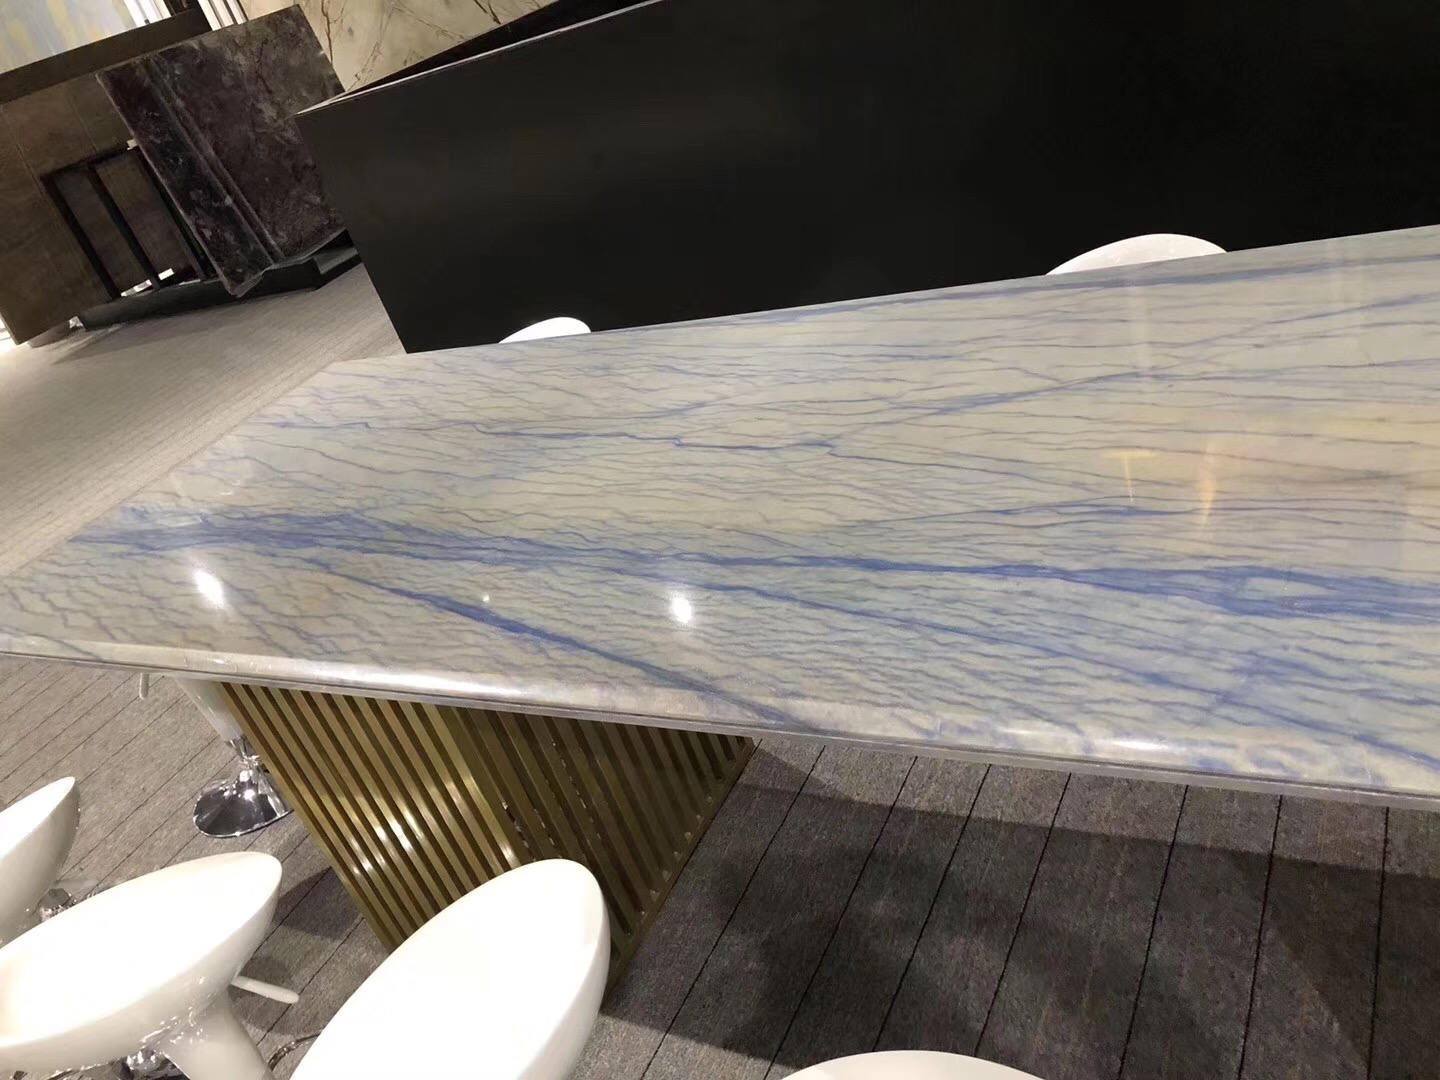 Blue marble,marble countertops prices,marble block,how is marble formed,what is marble made of,marble quarry,marbles images